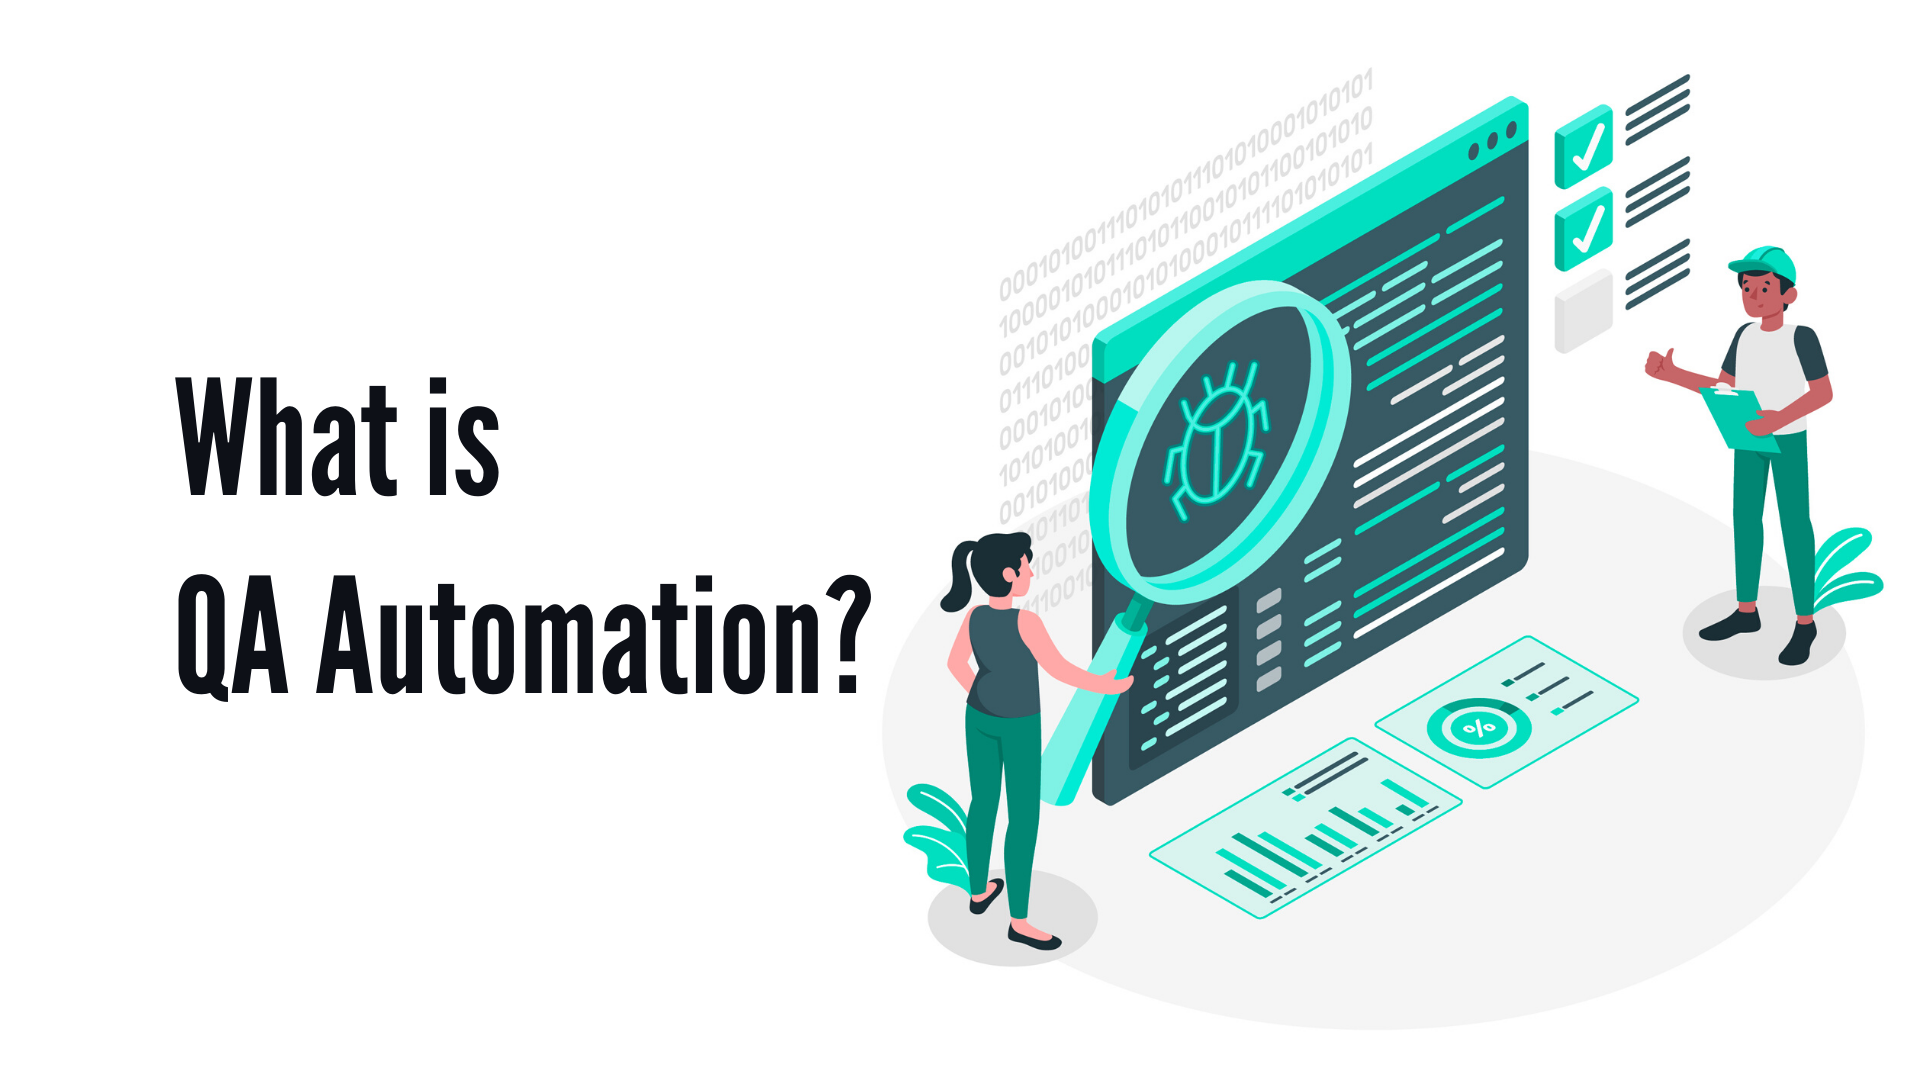 What is QA Automation?